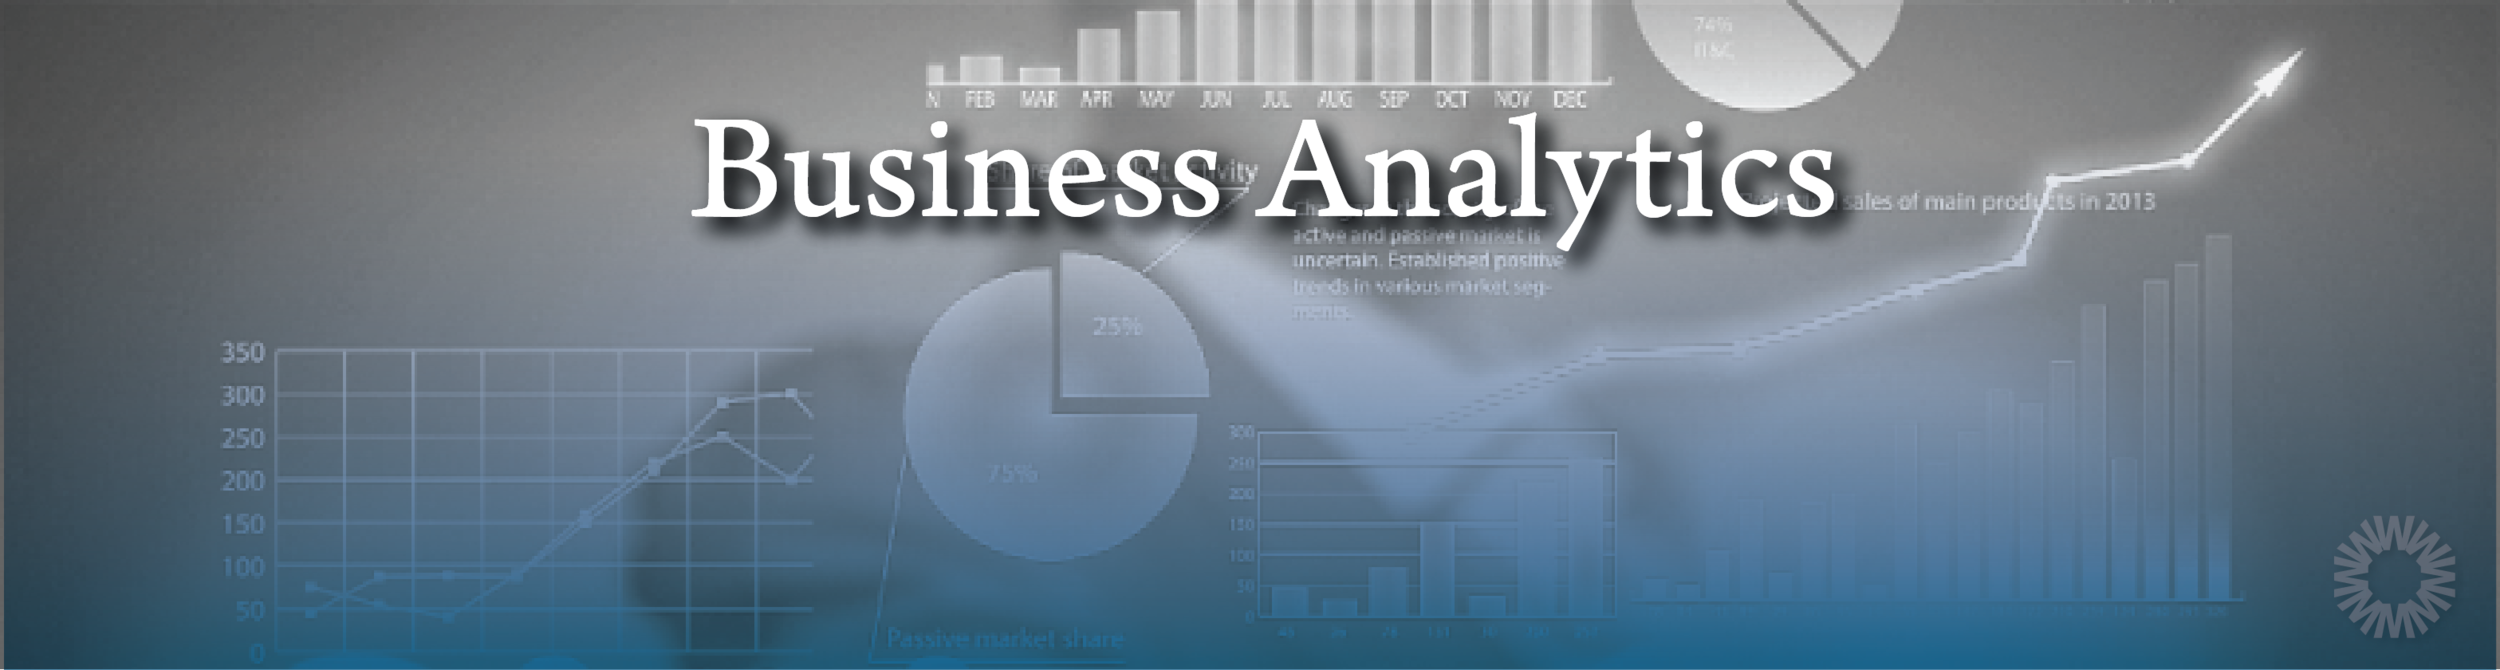 Header-Image-Business-Analytics.png